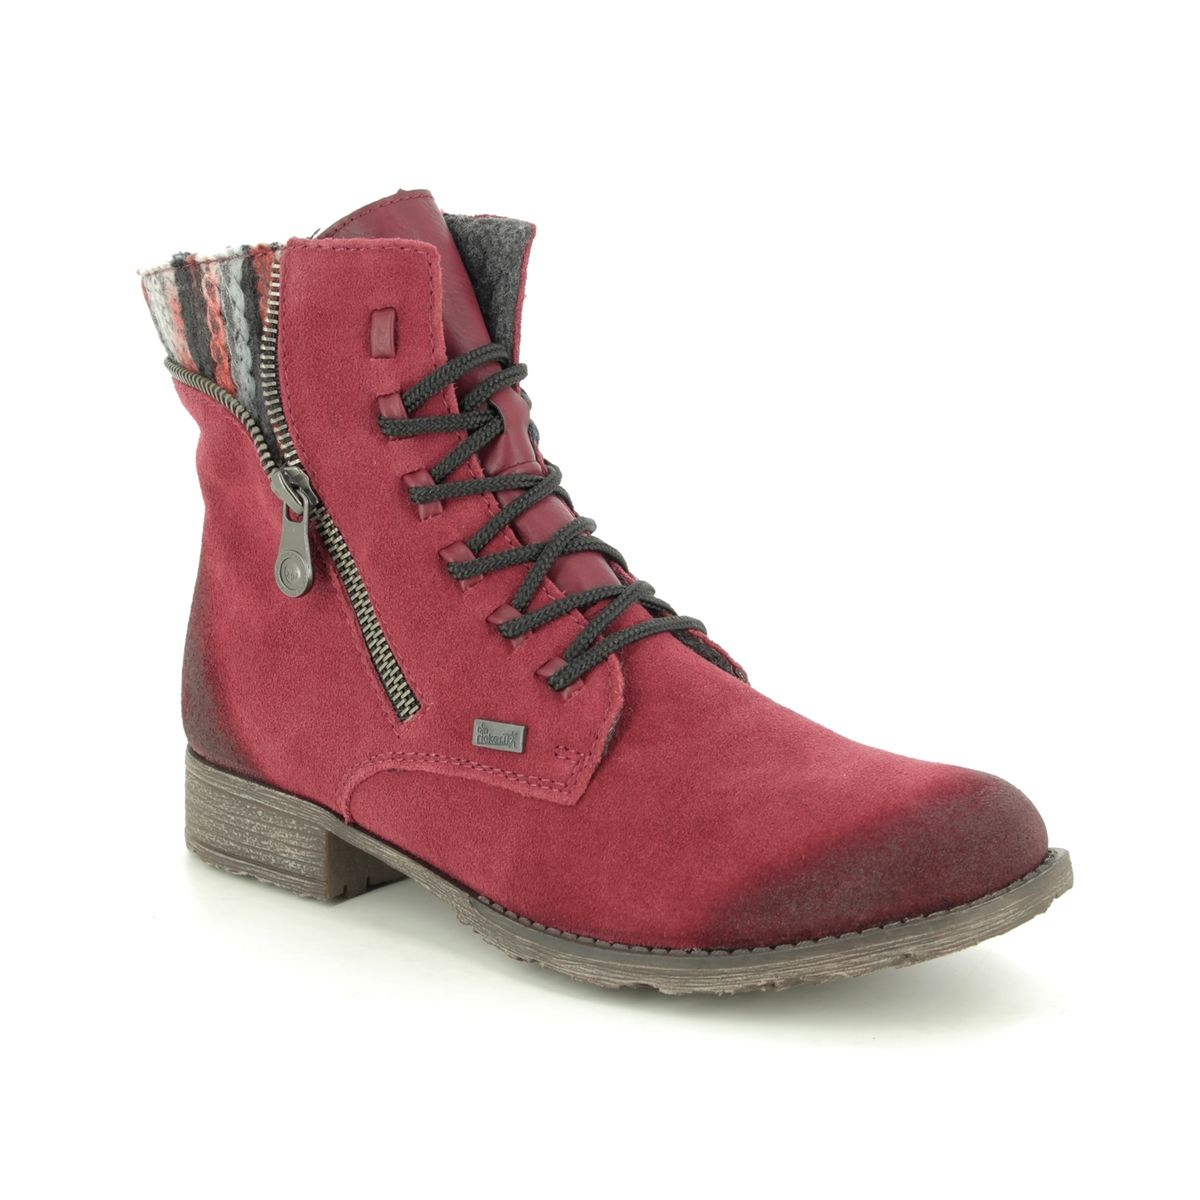 new images of reasonable price latest design 70840-35 Peery at Begg Shoes & Bags